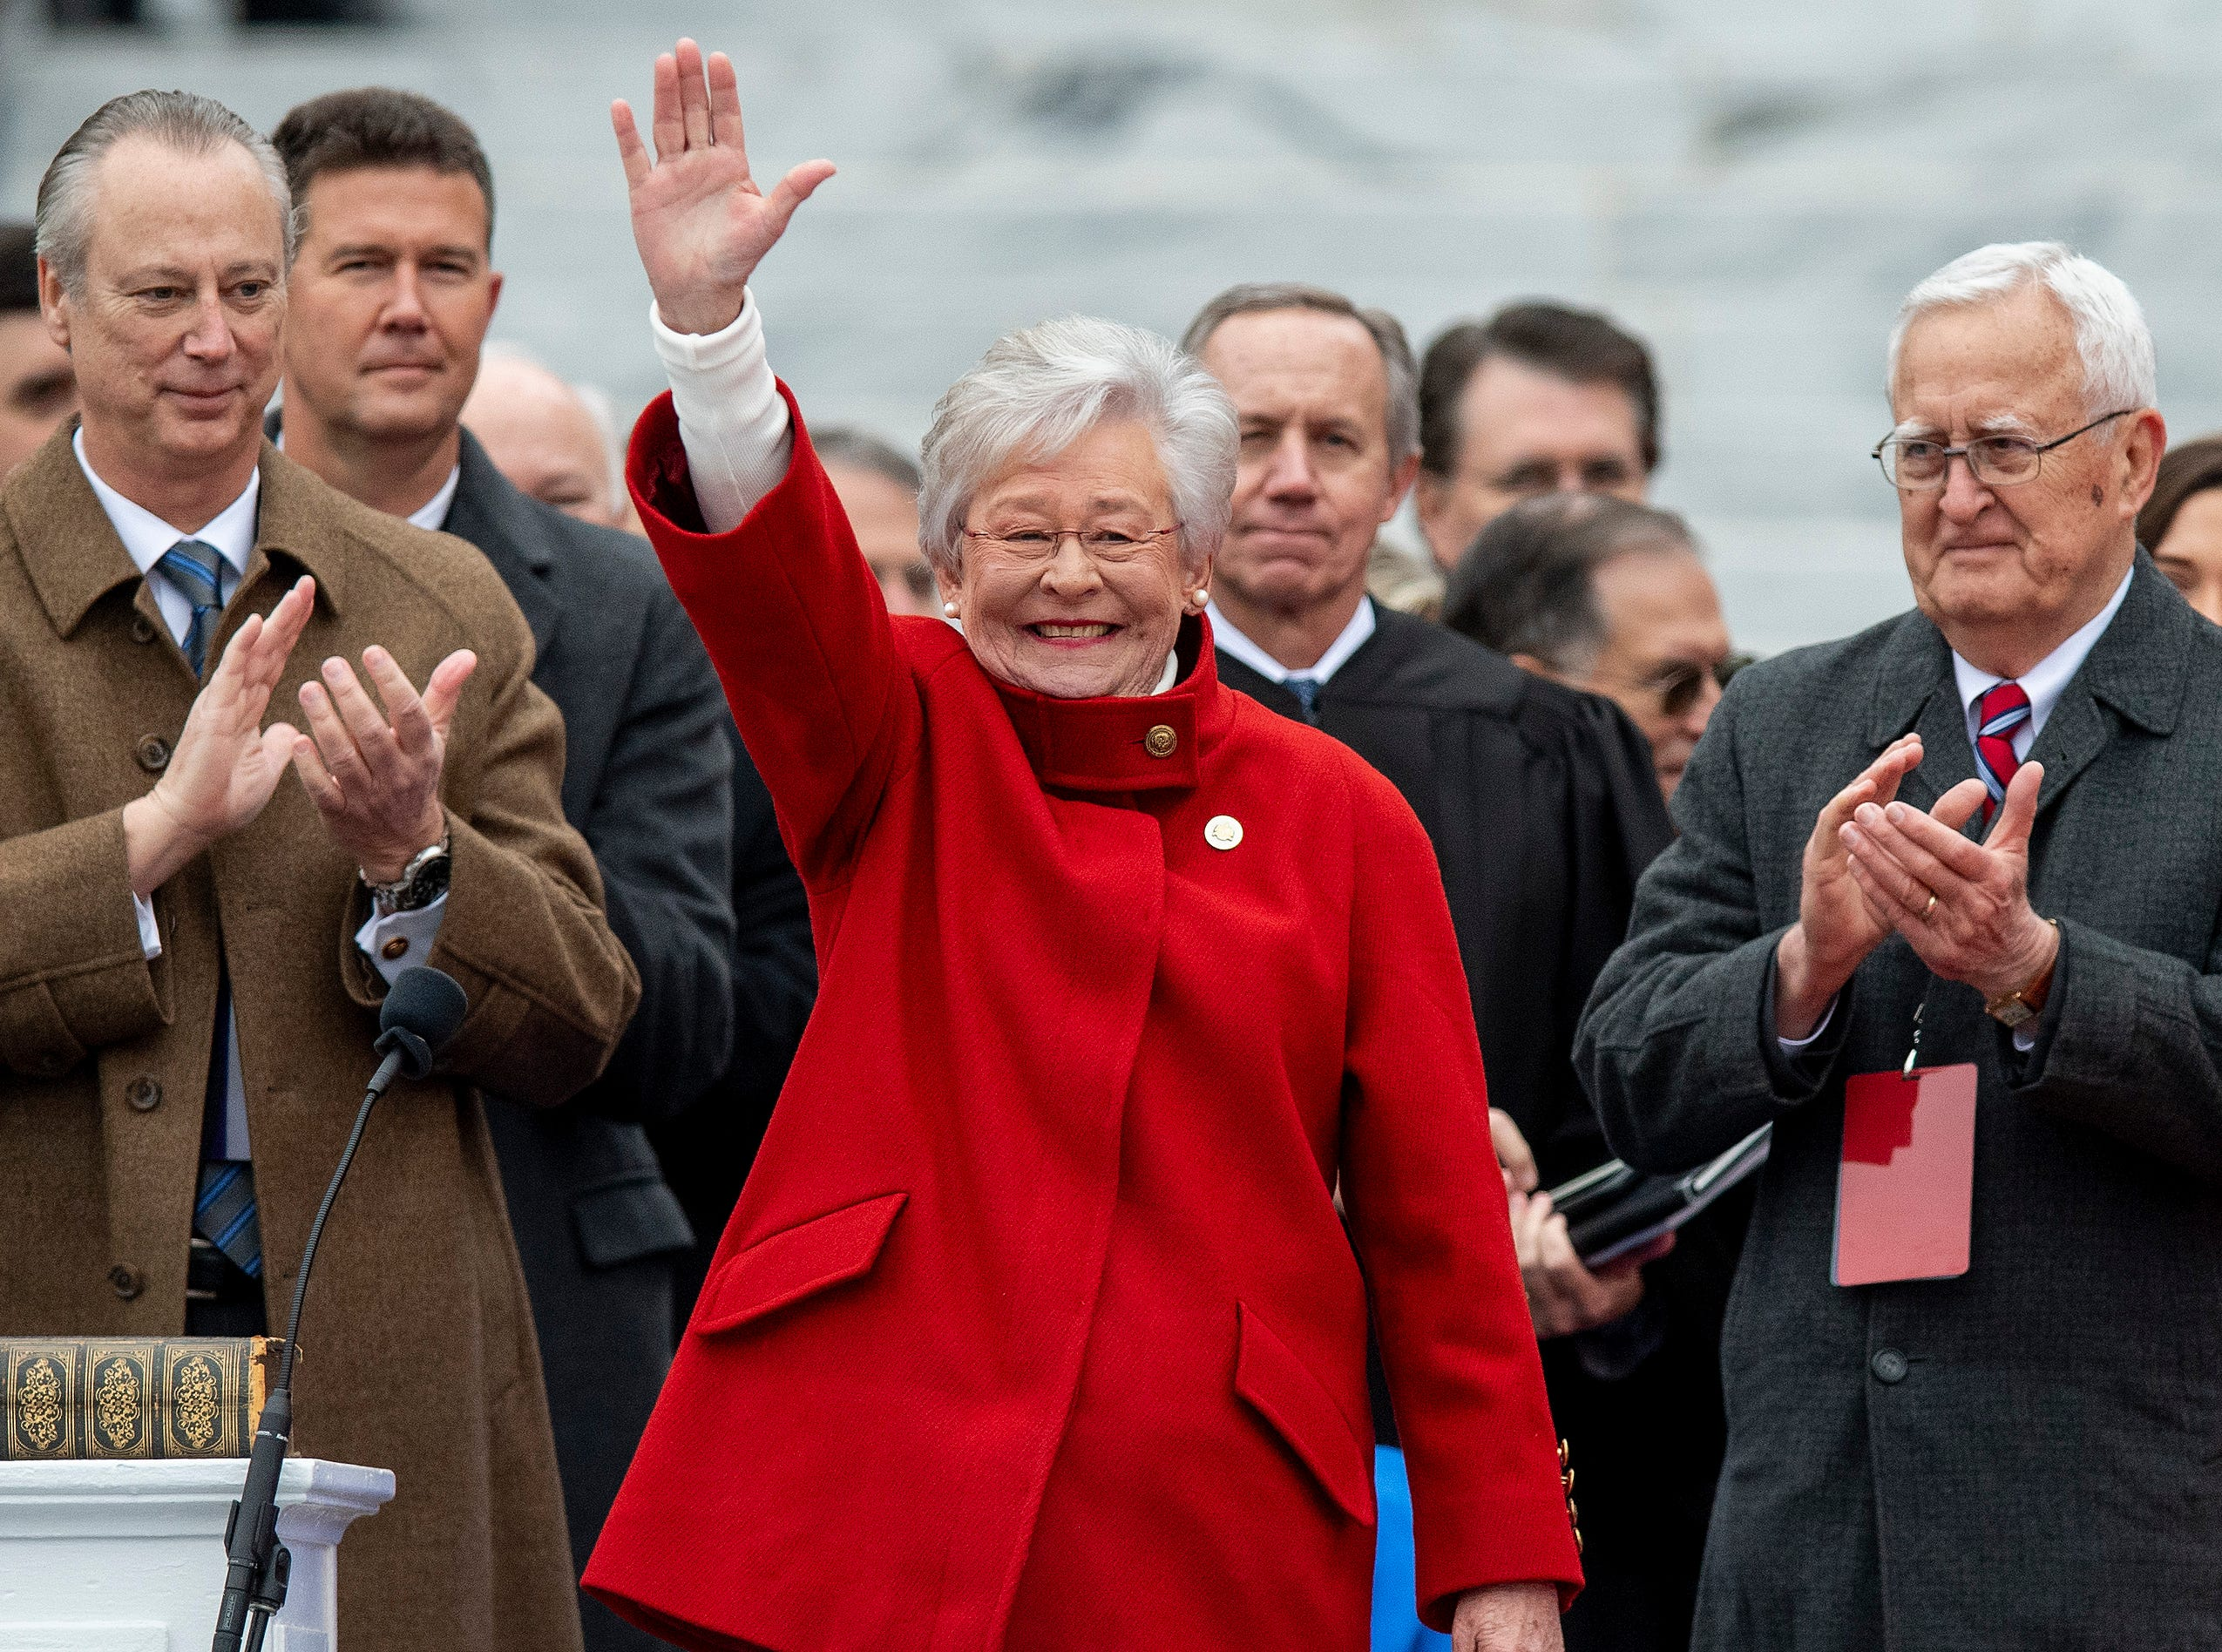 Governor Kay Ivey waves after being sworn in during her Inauguration on the state capitol steps in Montgomery, Ala., on Monday January 14, 2019.